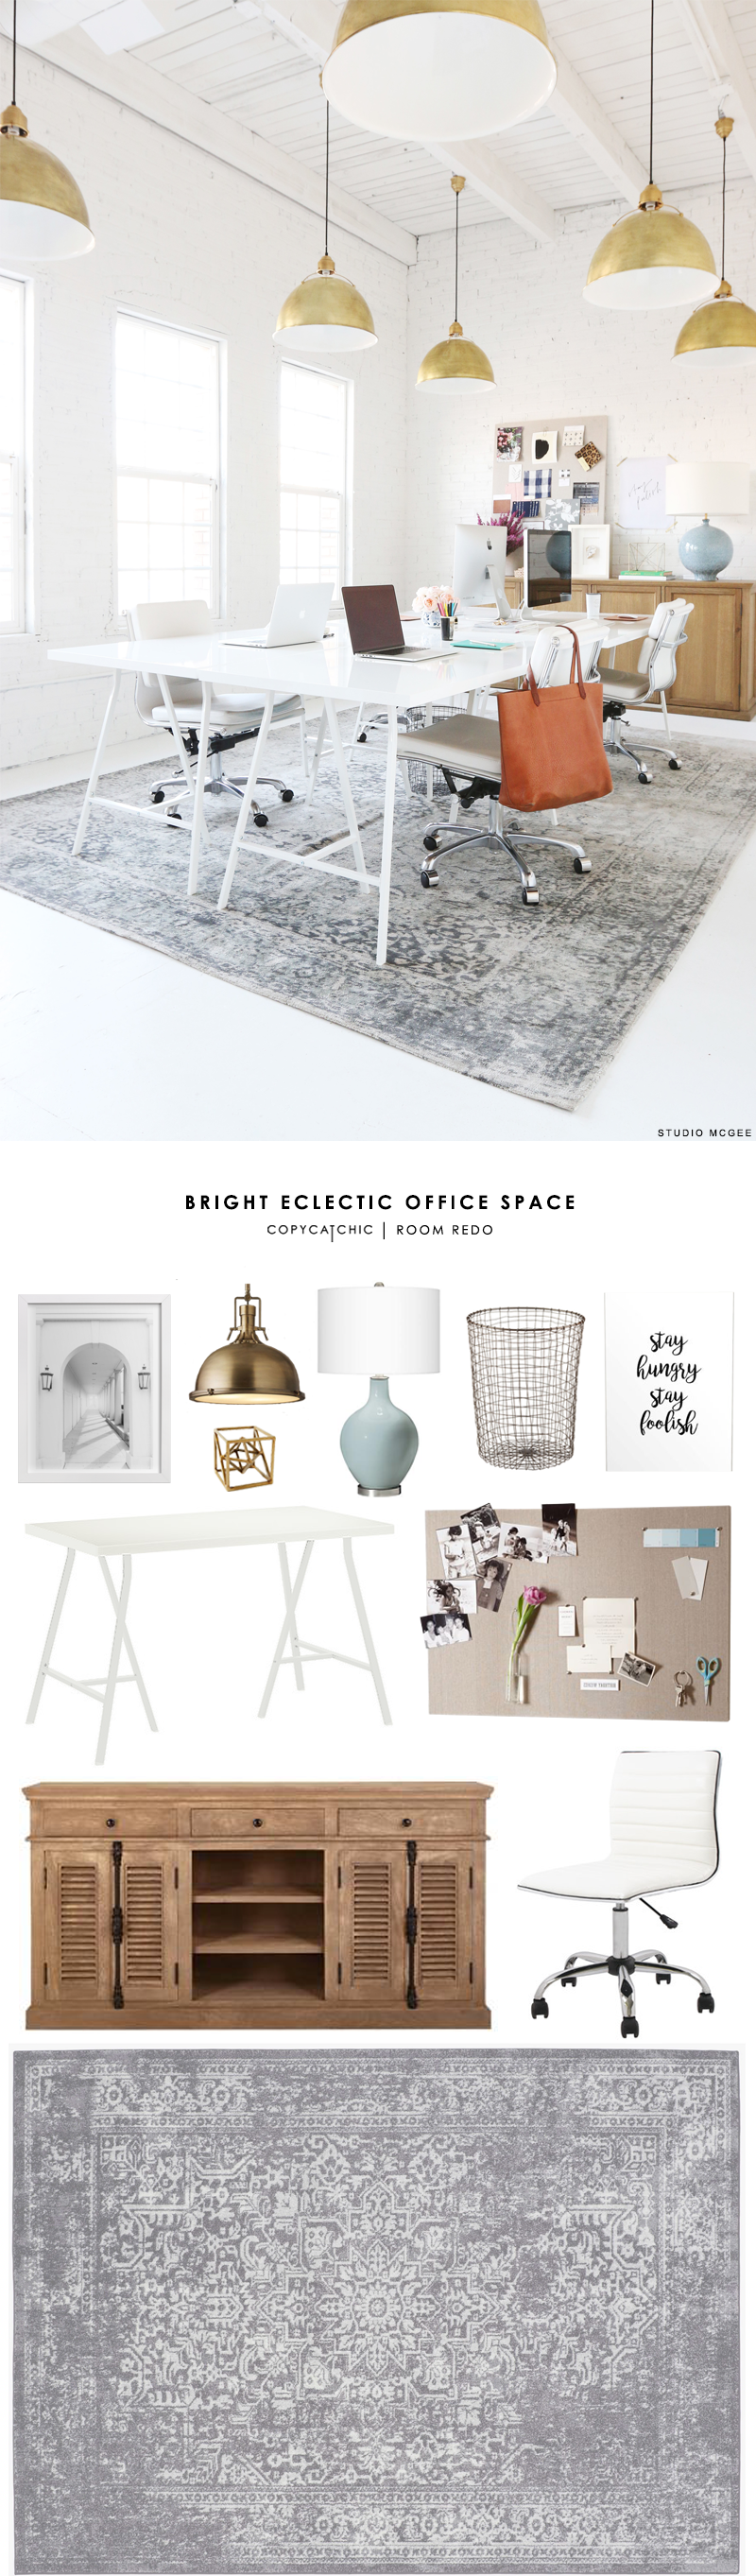 Studio McGee office gets recreated for less by Copy Cat Chic luxe living for less budget home decor and designs Room Redos on a budget look for less